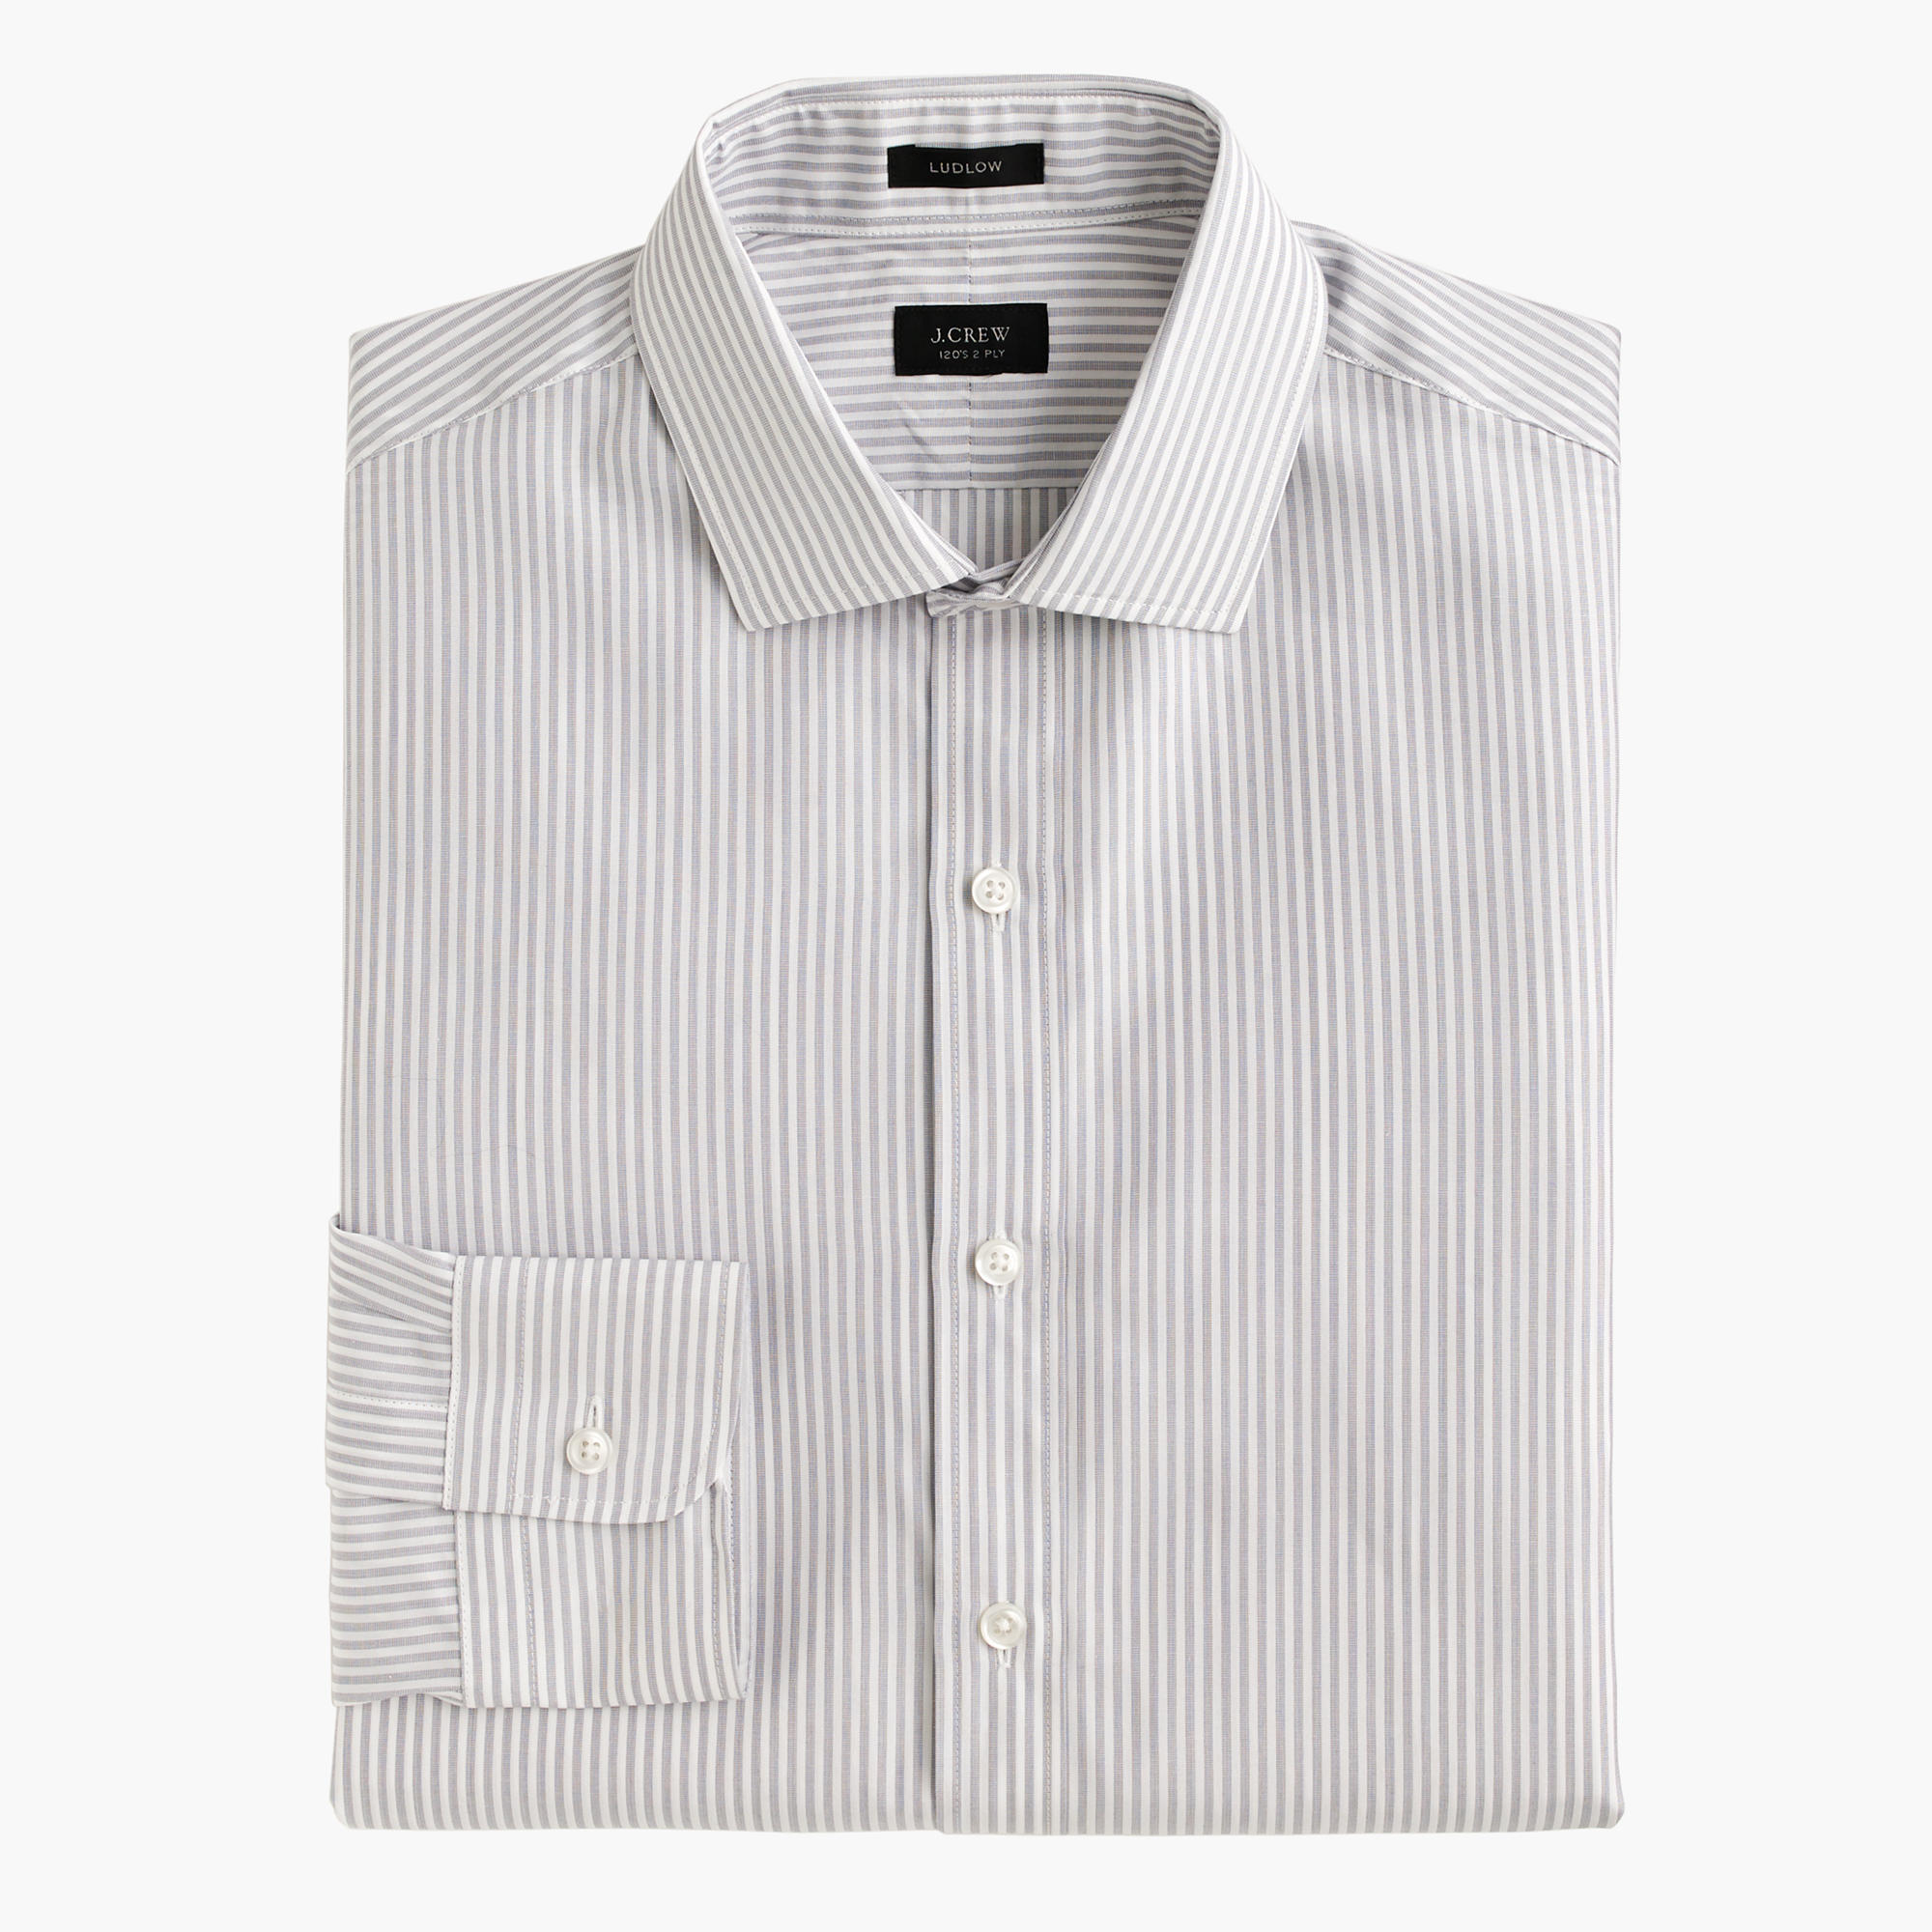 Men's Dress Shirts : Ludlow & Crosby Button-Down Shirts | J.Crew